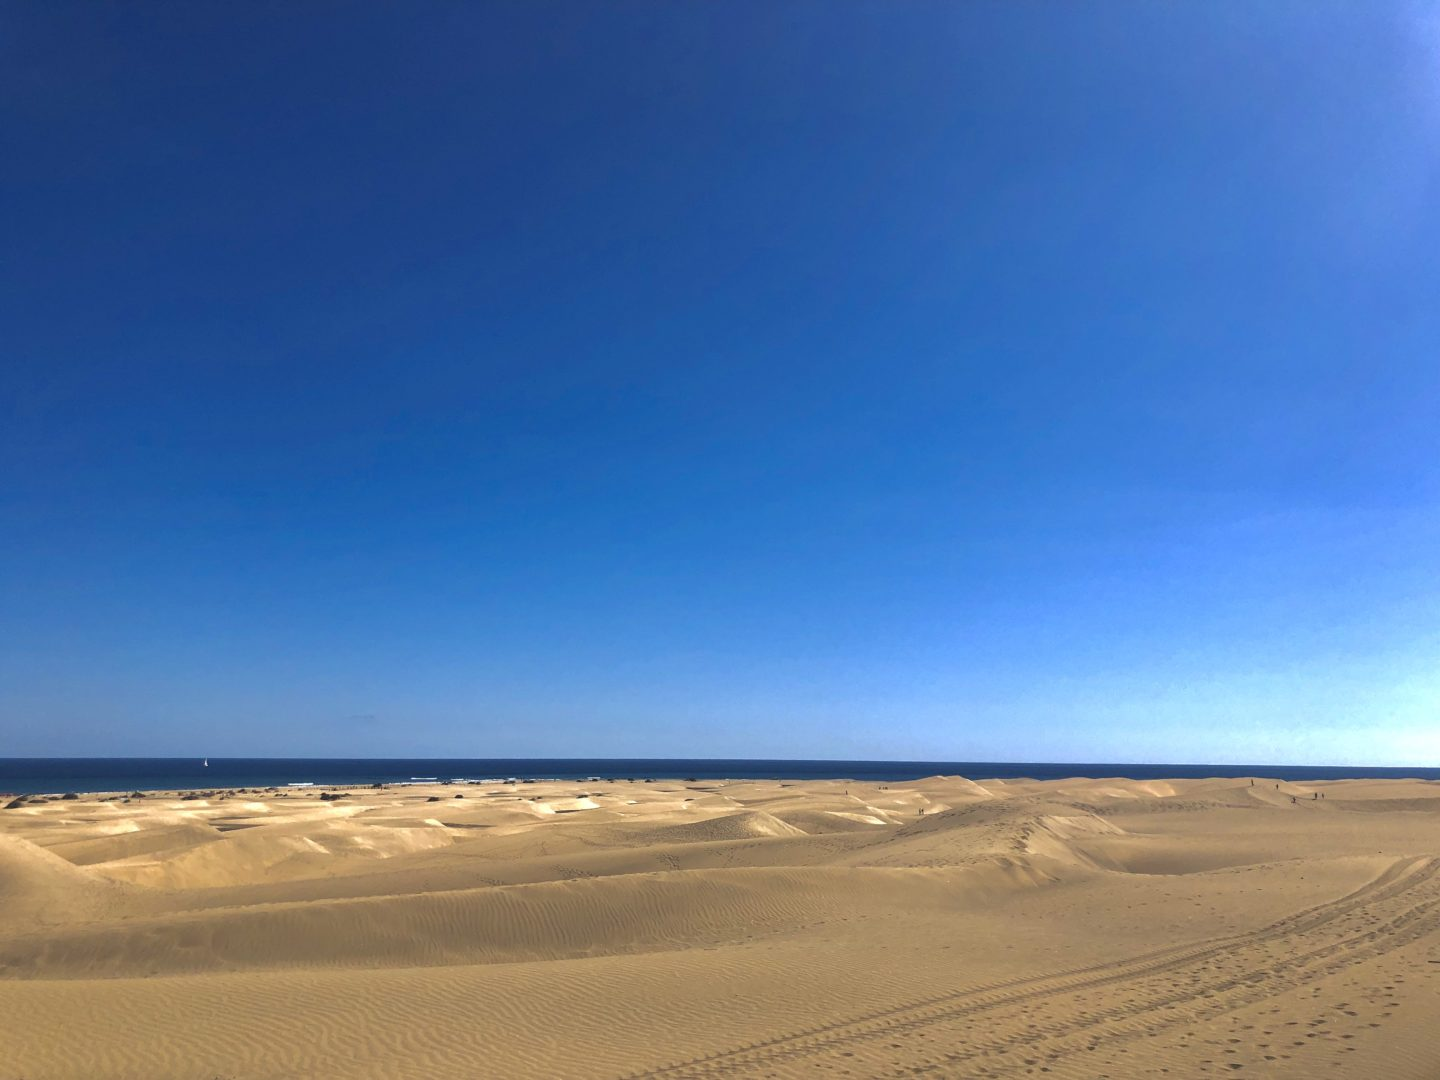 Things to do in playa del ingles - the Maspalomas dunes